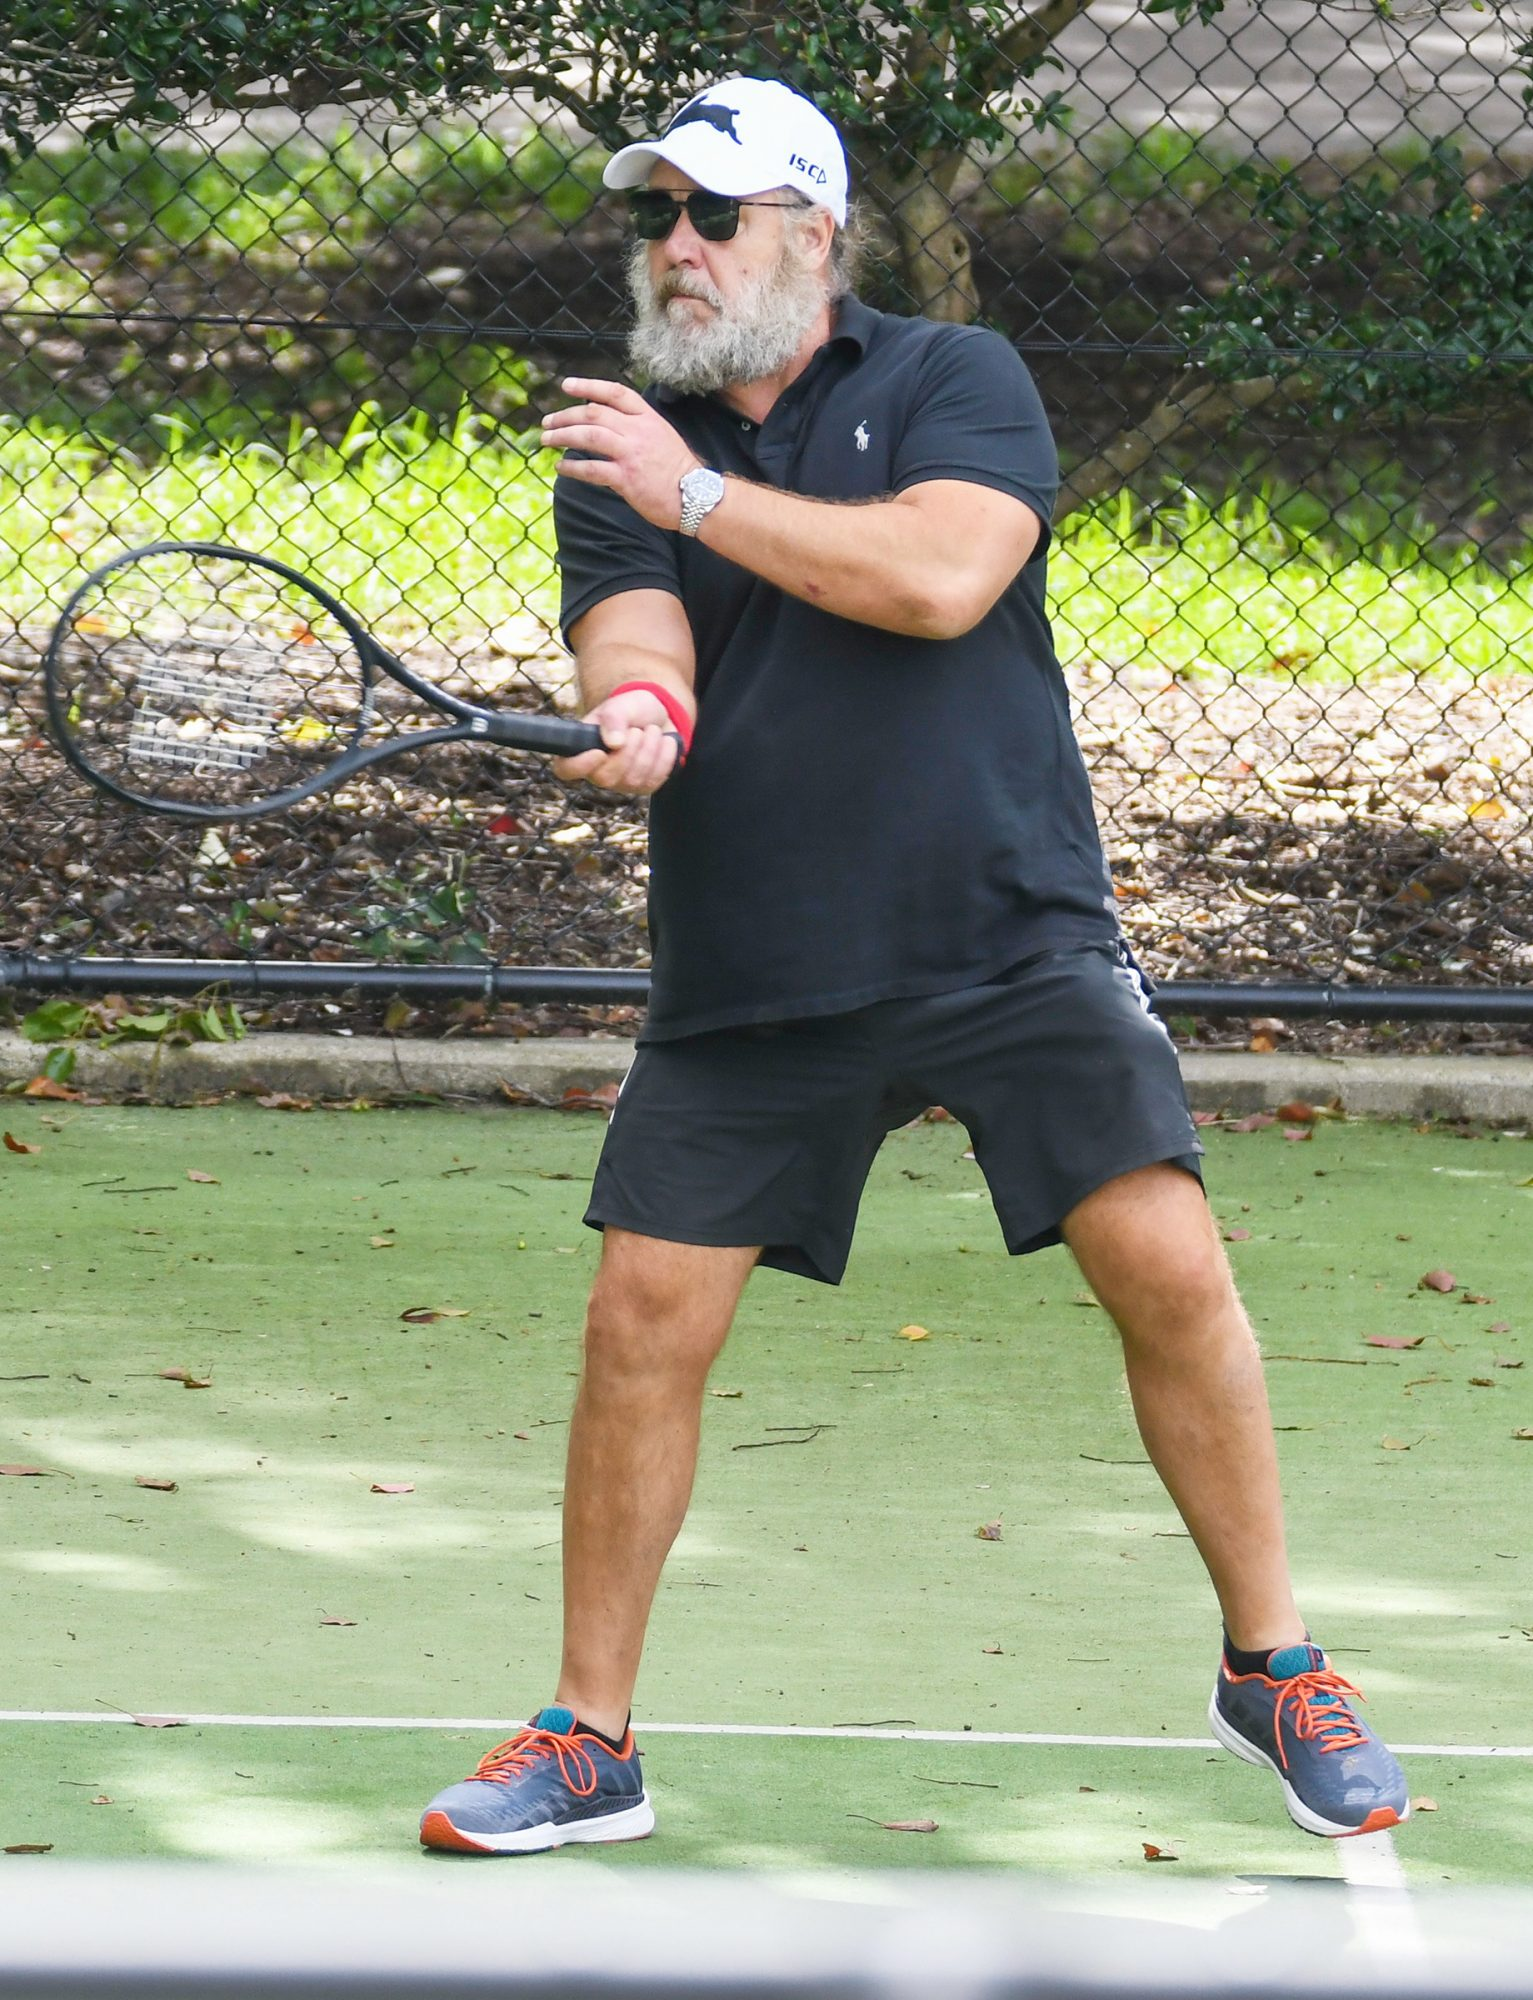 Russell Crowe And Girlfriend Britney Theriot Hit The Courts For Their Regular Tennis Double Match In Sydney